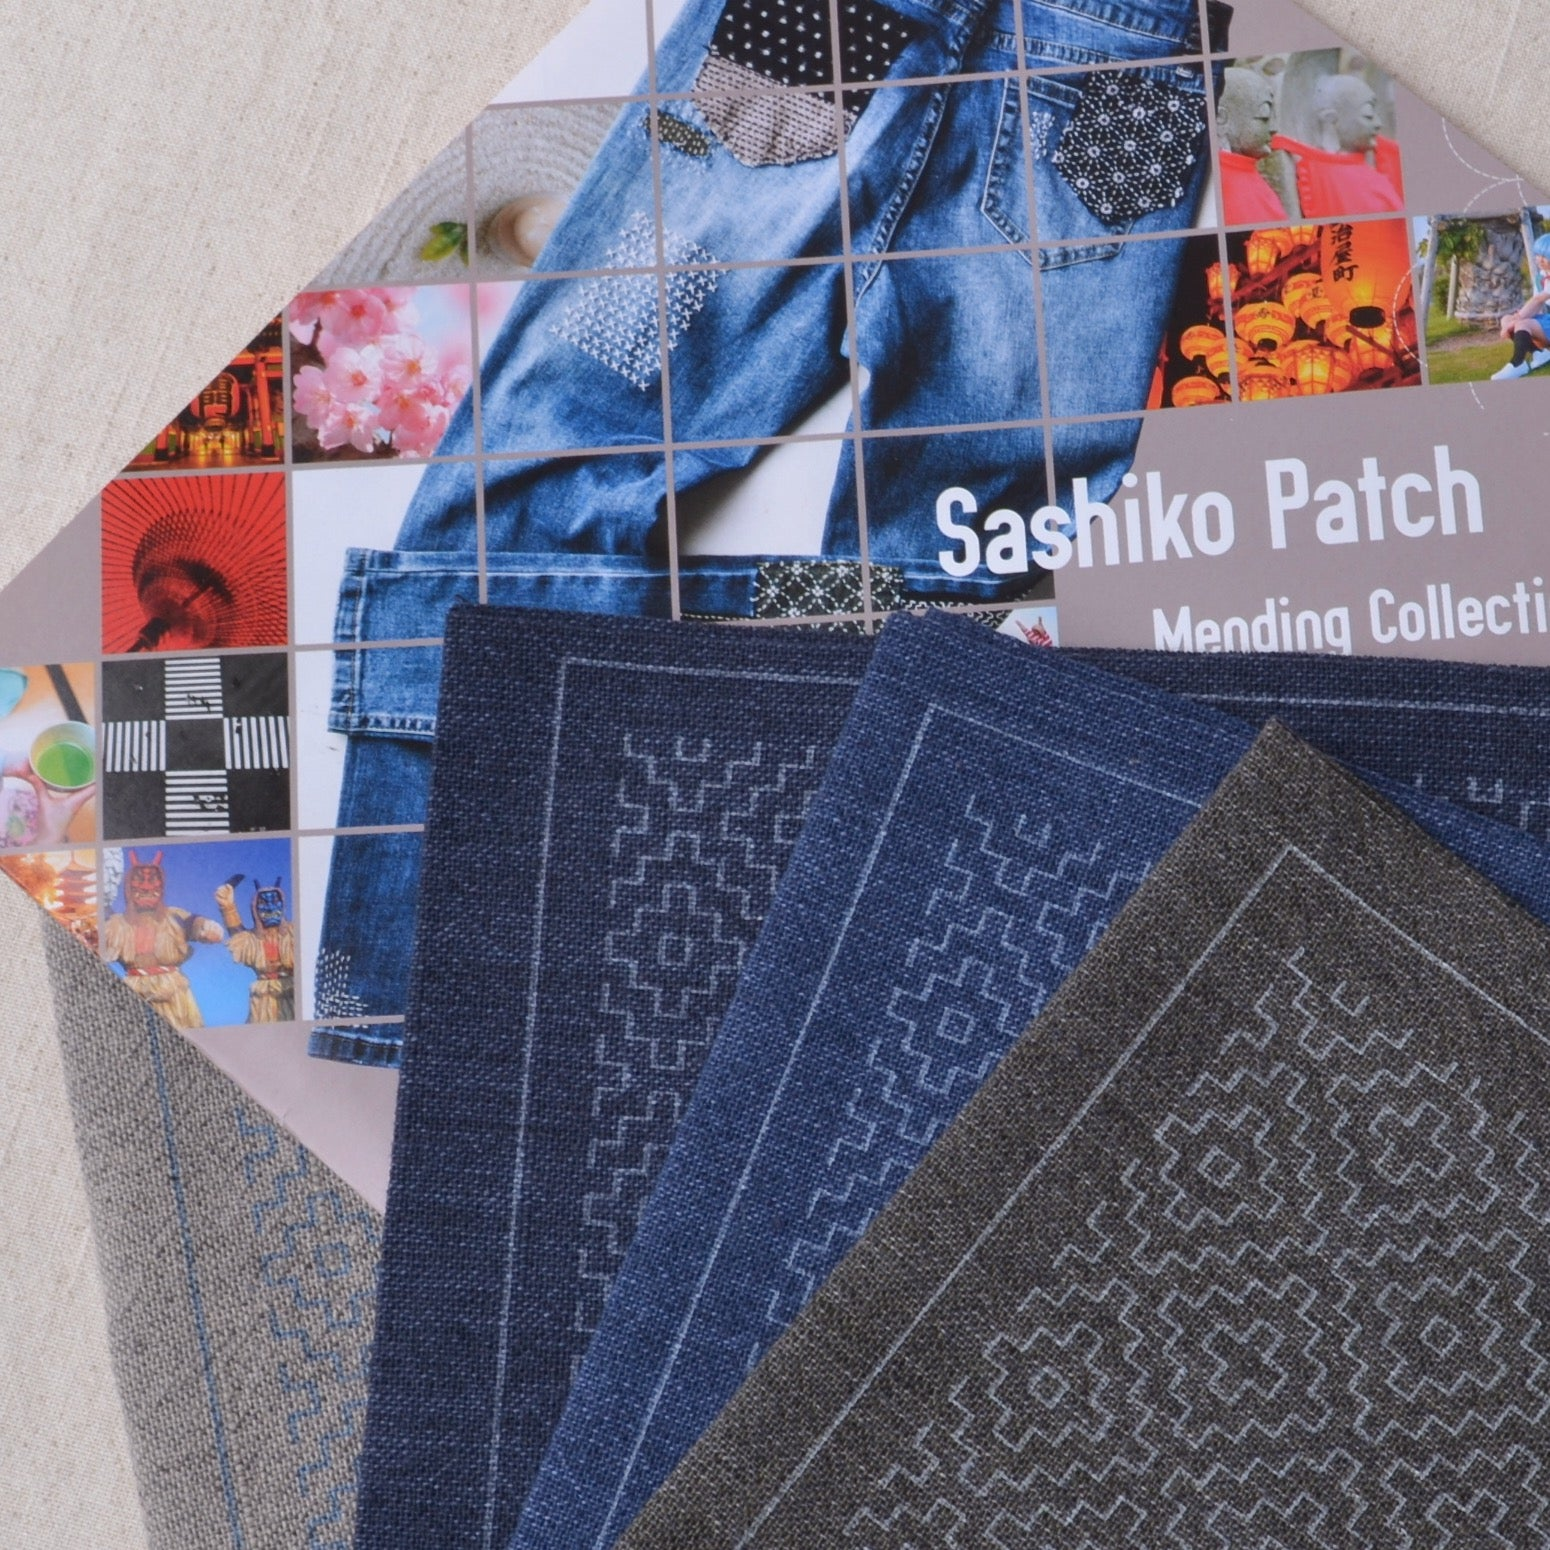 Sashiko Patch showing available colors